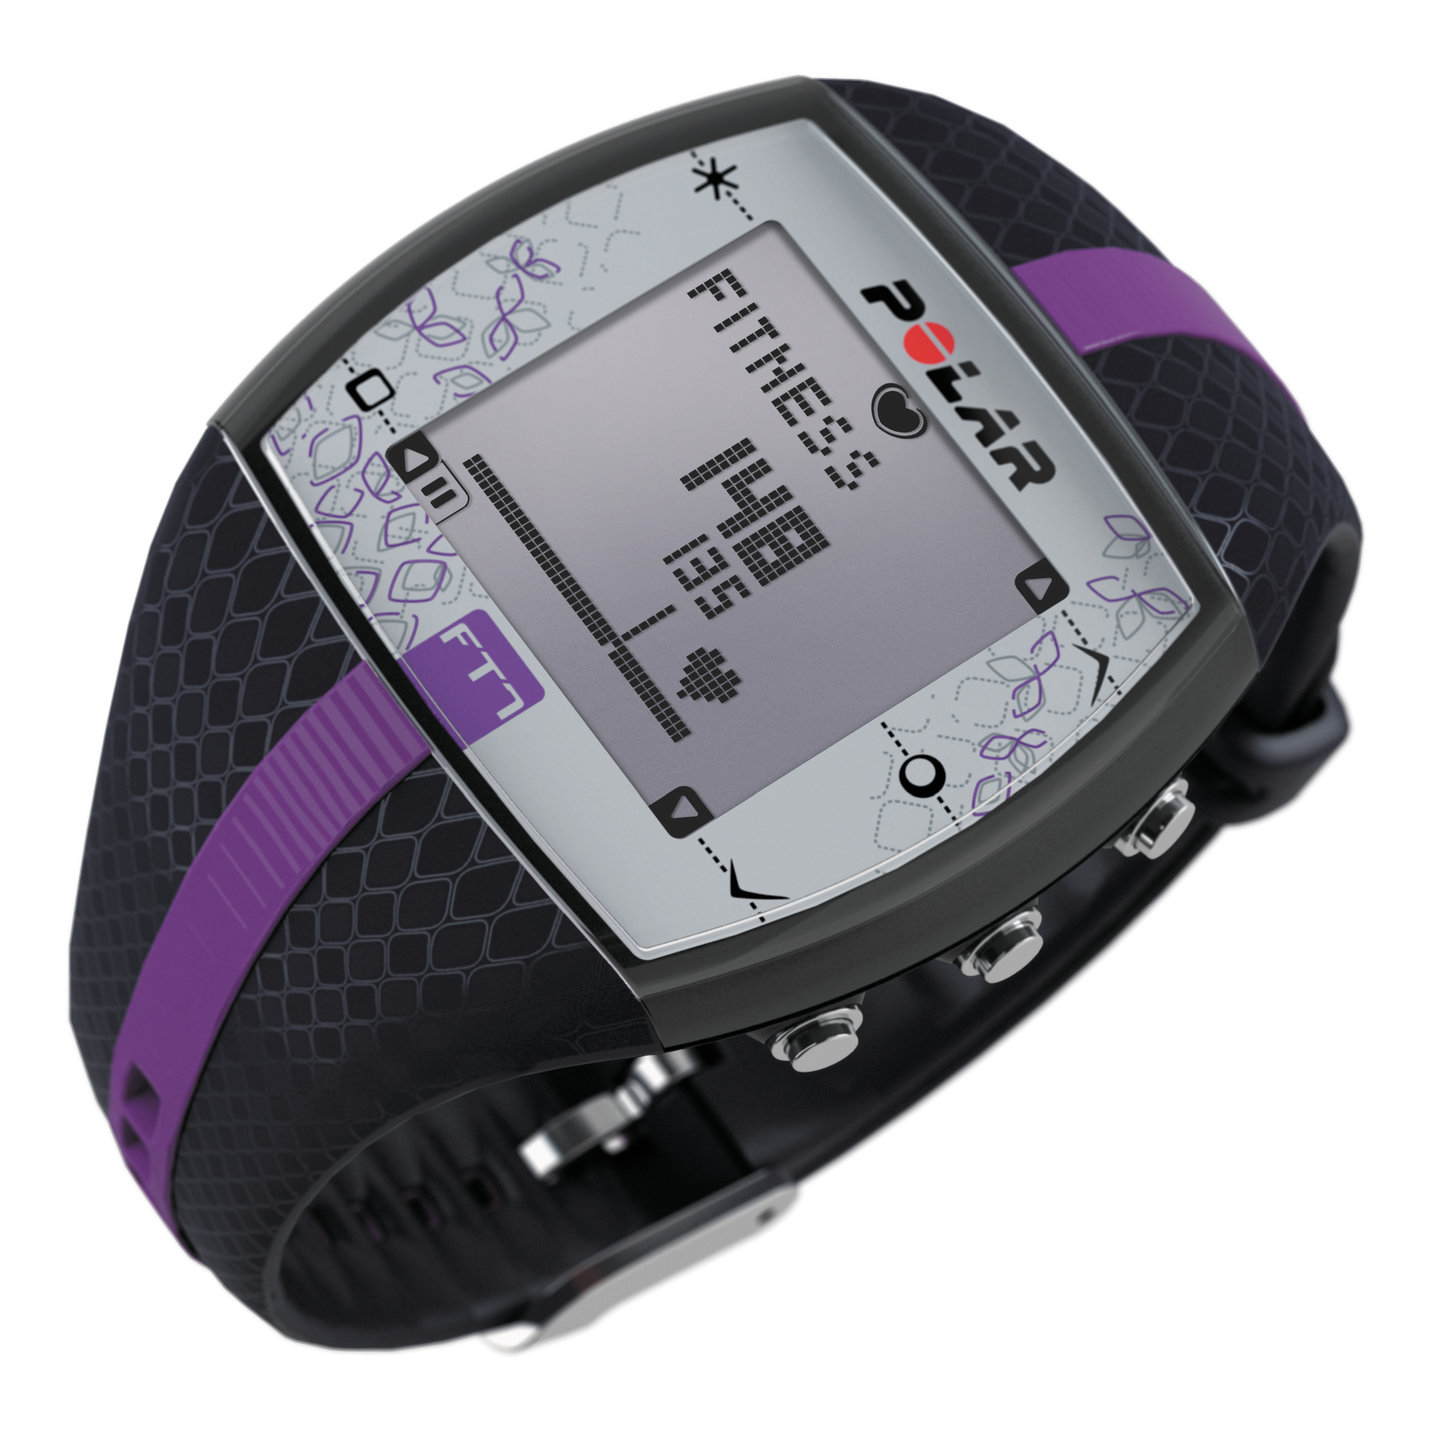 Polar Ft7 Jam Tangan Heart Rate Monitor Hrm Bluelilac Daftar Harga Adidas Adp 3235 Digital Black Watch Mens Ladies Sports Fitness Ft7m Ft7f